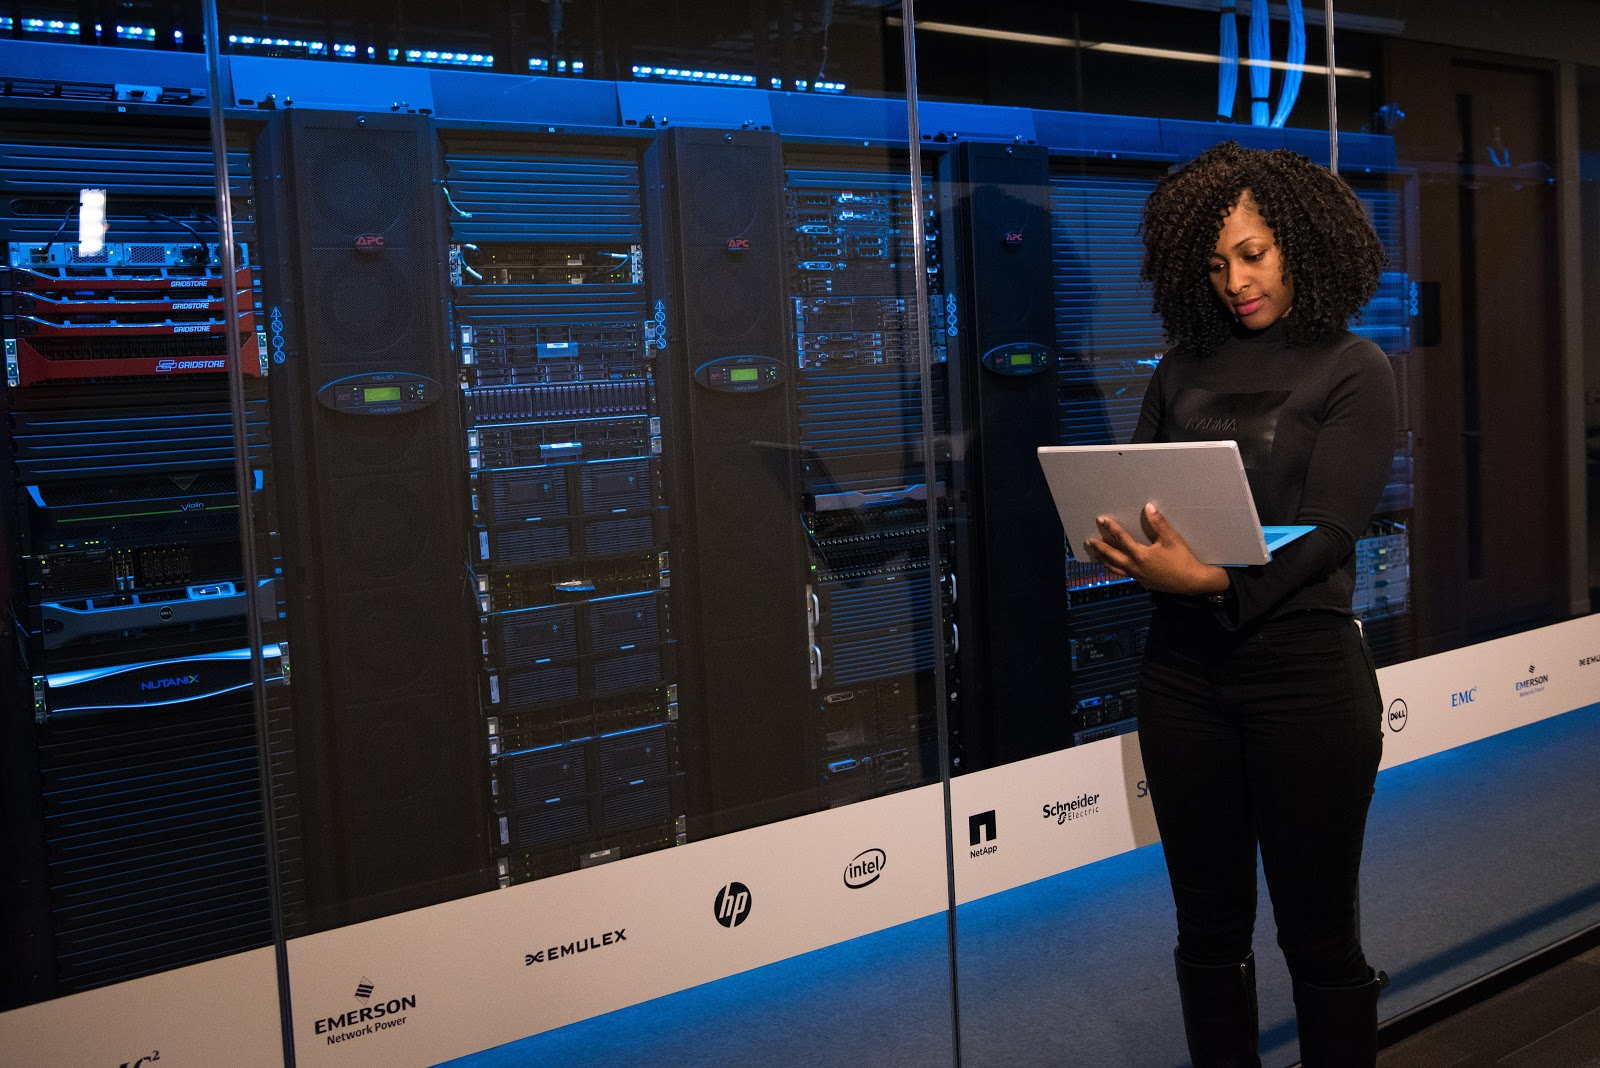 a woman standing next to multiple servers